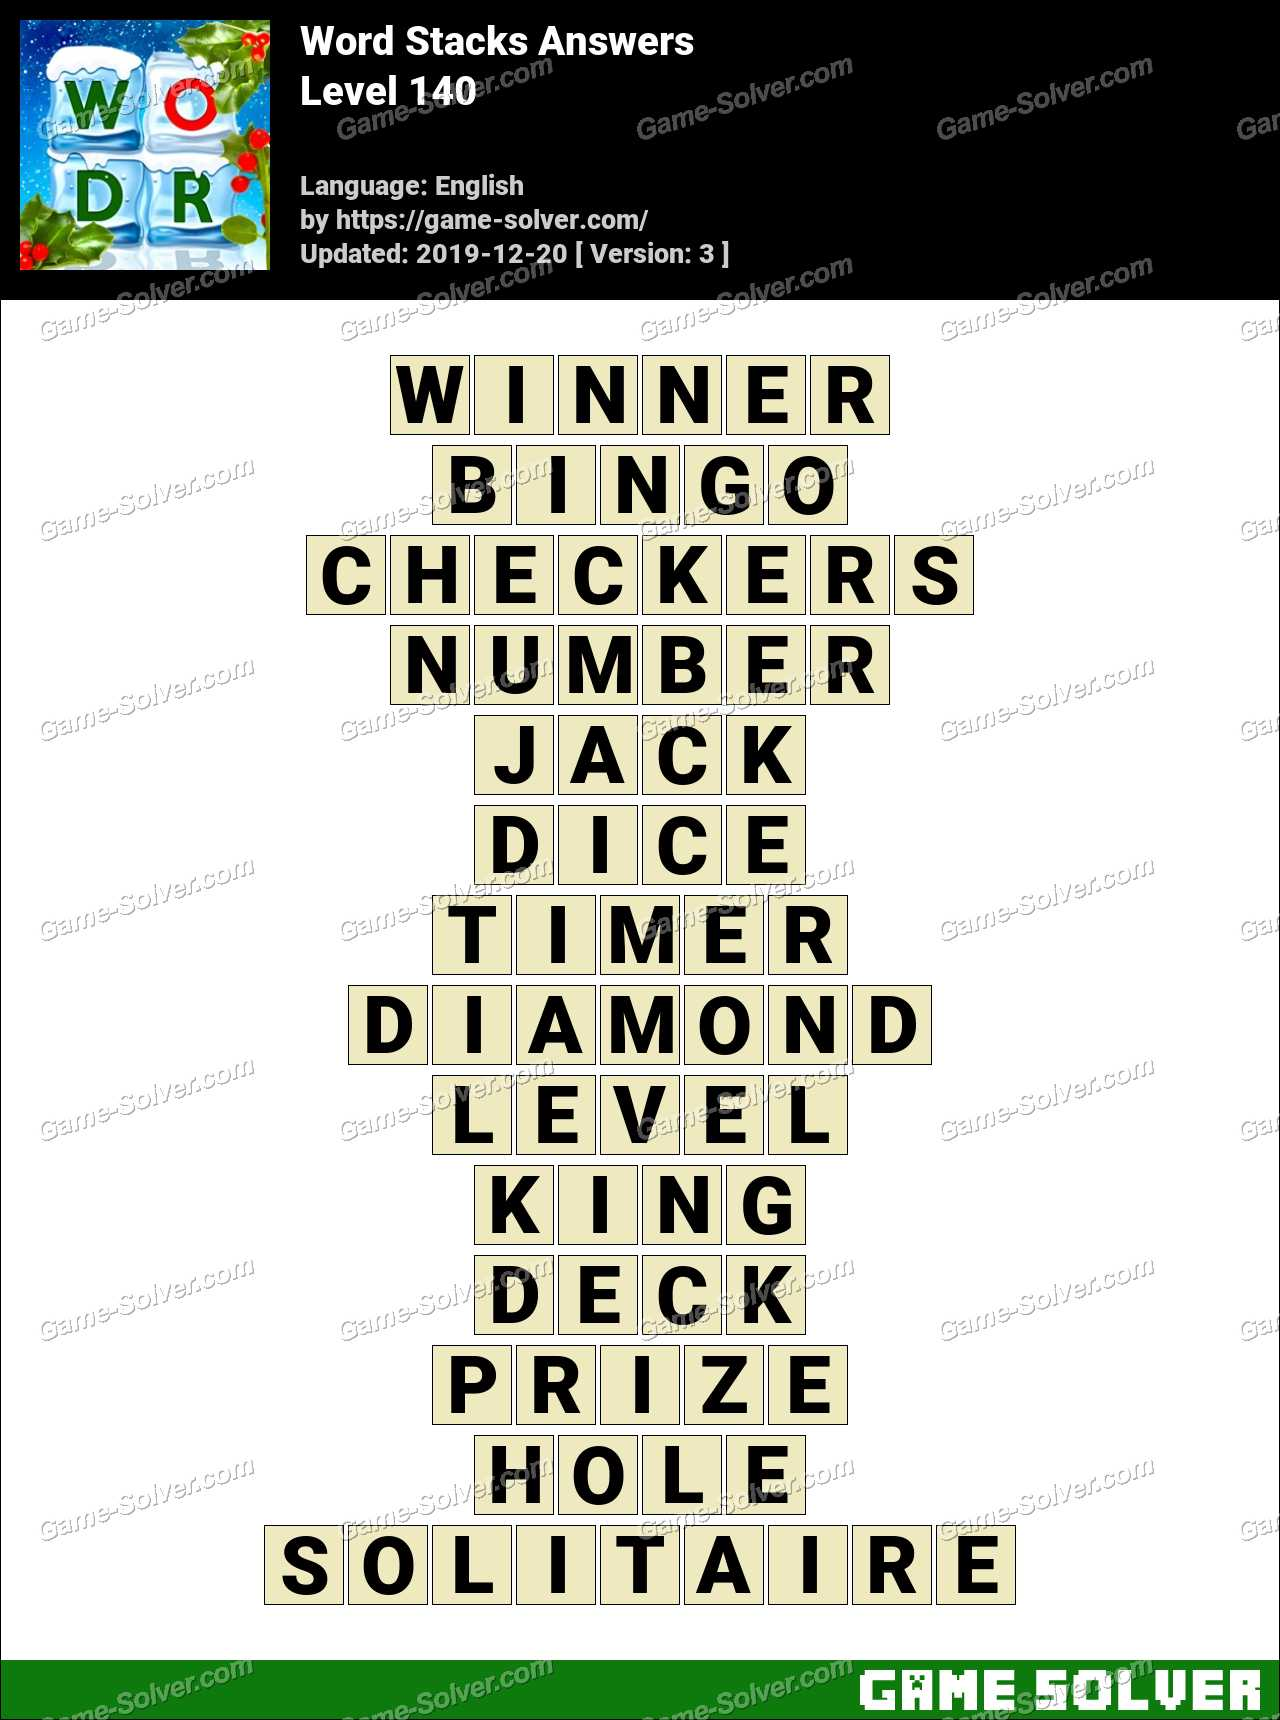 Word Stacks Level 140 Answers